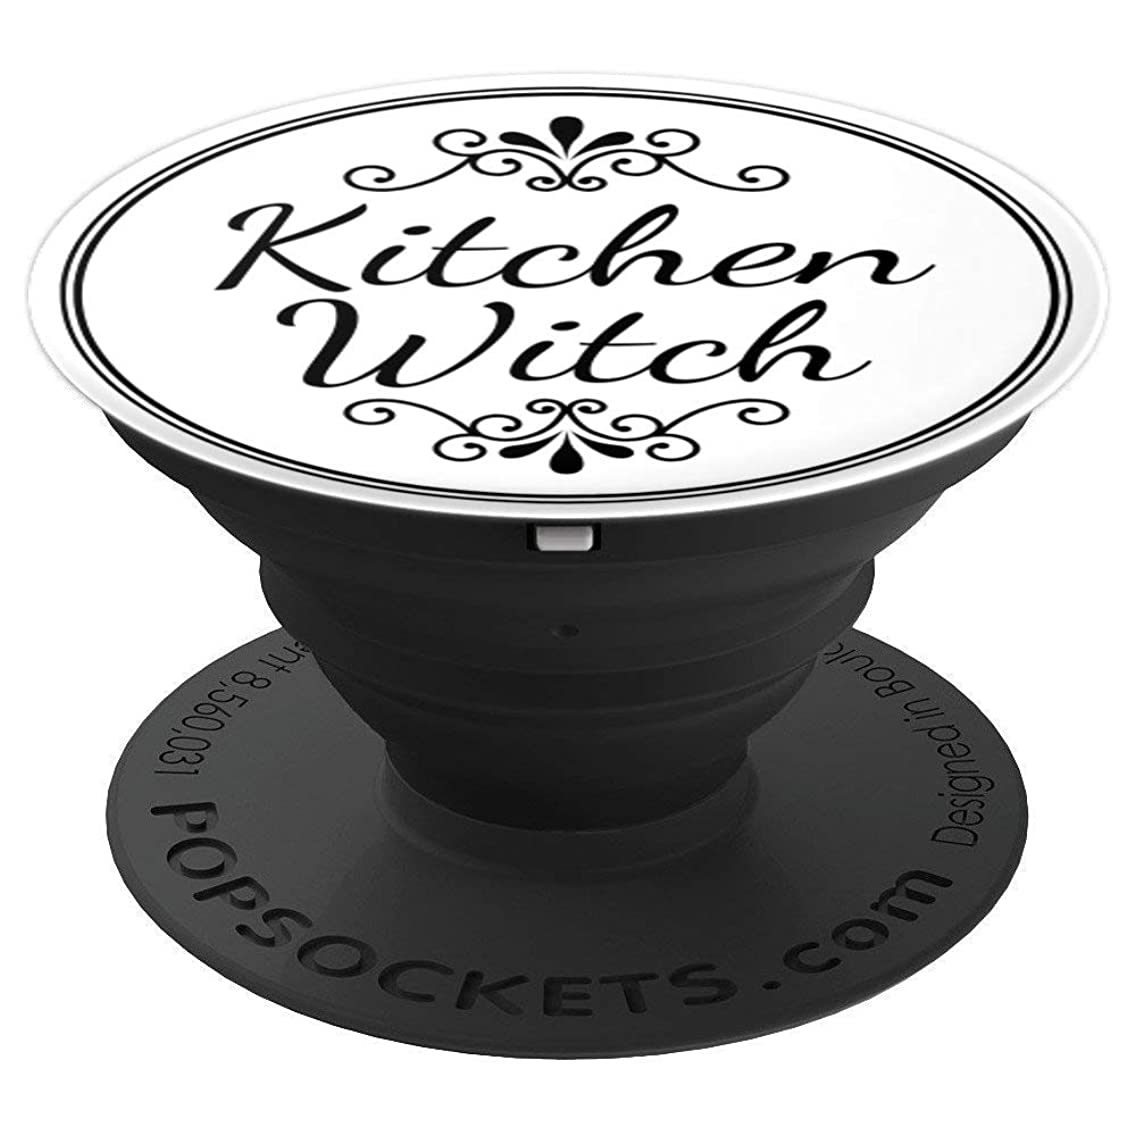 Kitchen Witch (Cursive) - PopSockets Grip and Stand for Phones and Tablets